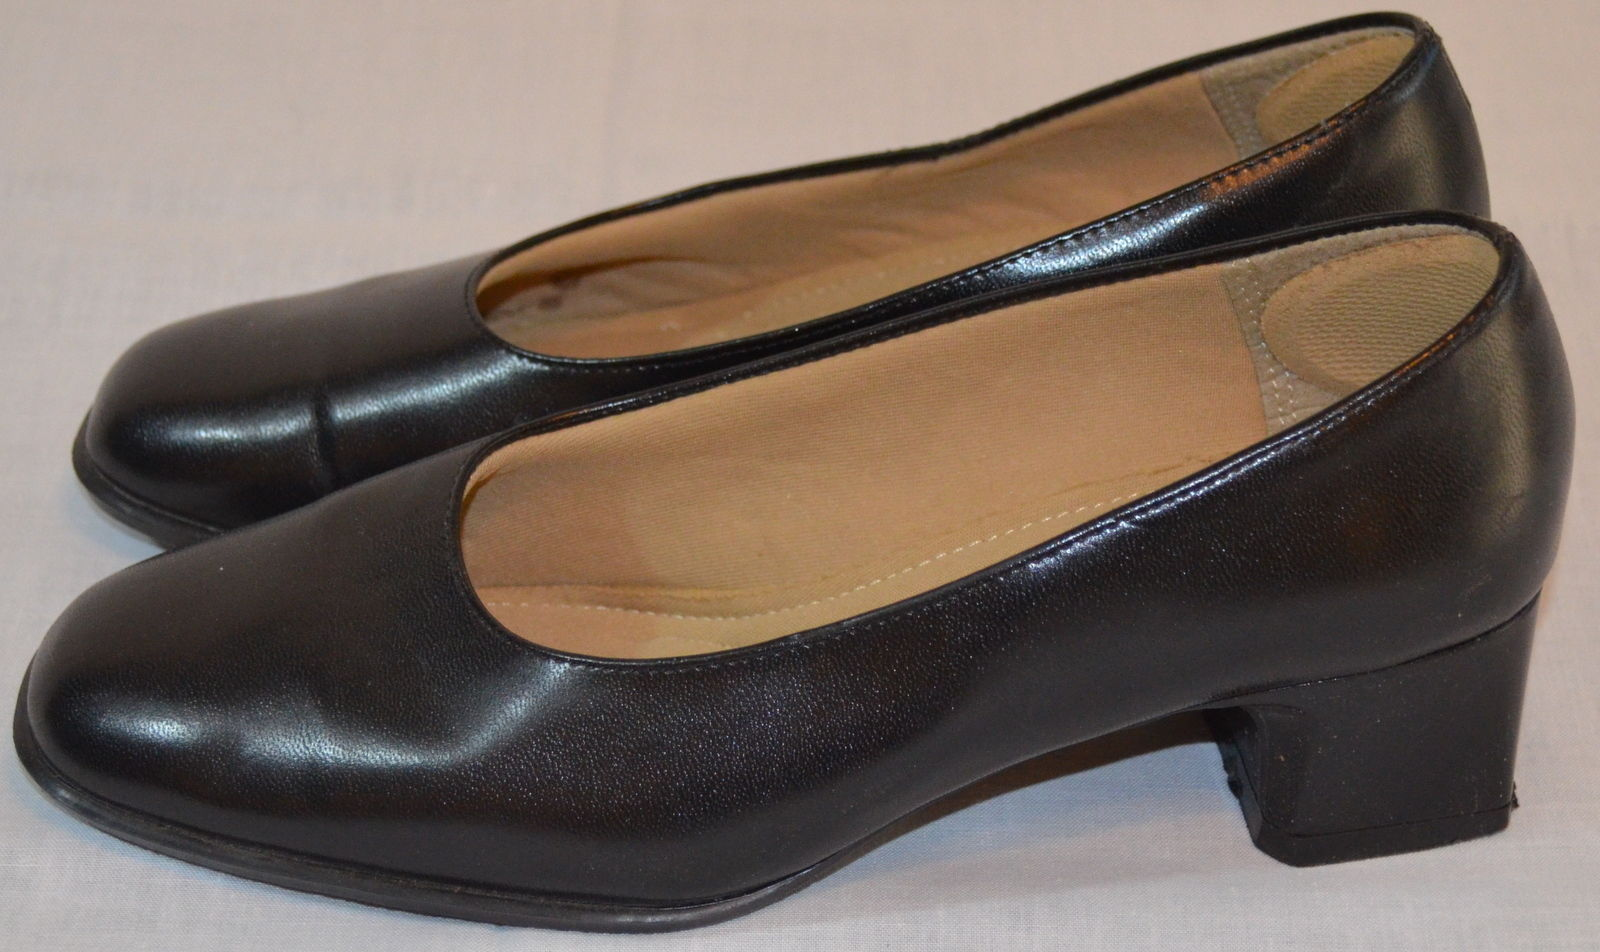 7744e62064019 Comfort First by Fanfares Women's Black and 15 similar items